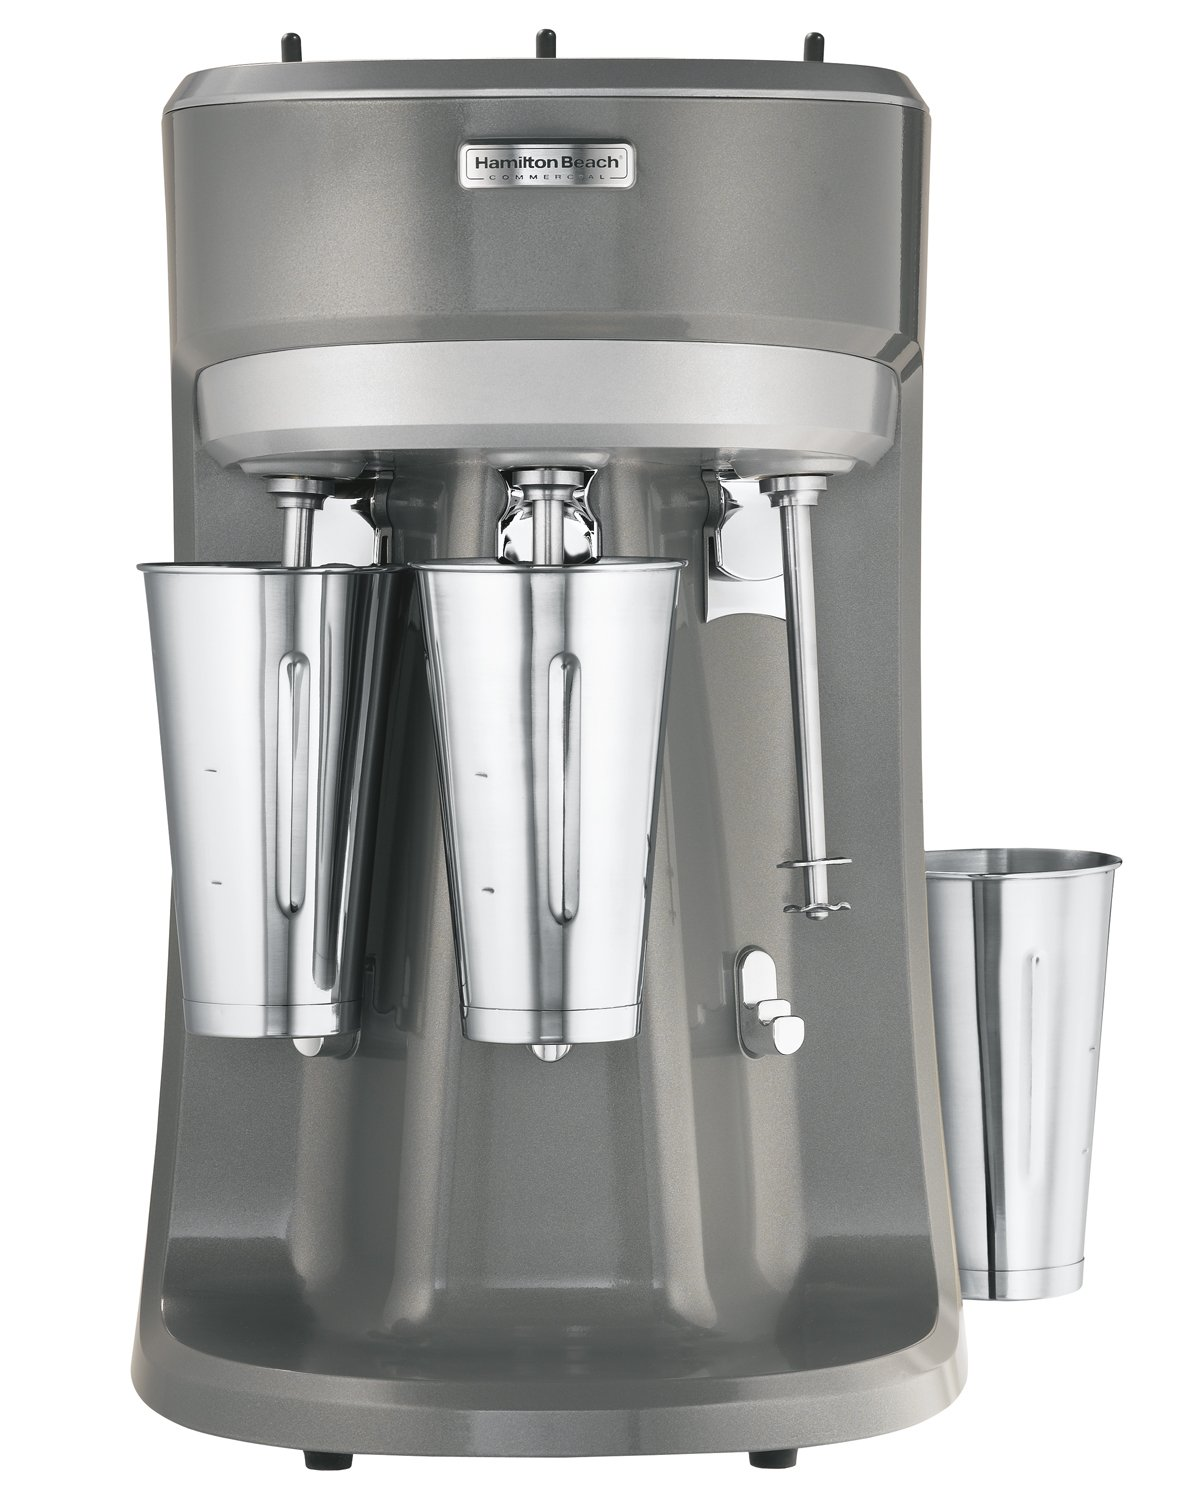 Image of Home and Kitchen Hamilton Beach HMD400 120V Triple Spindle Commercial Drink Mixer